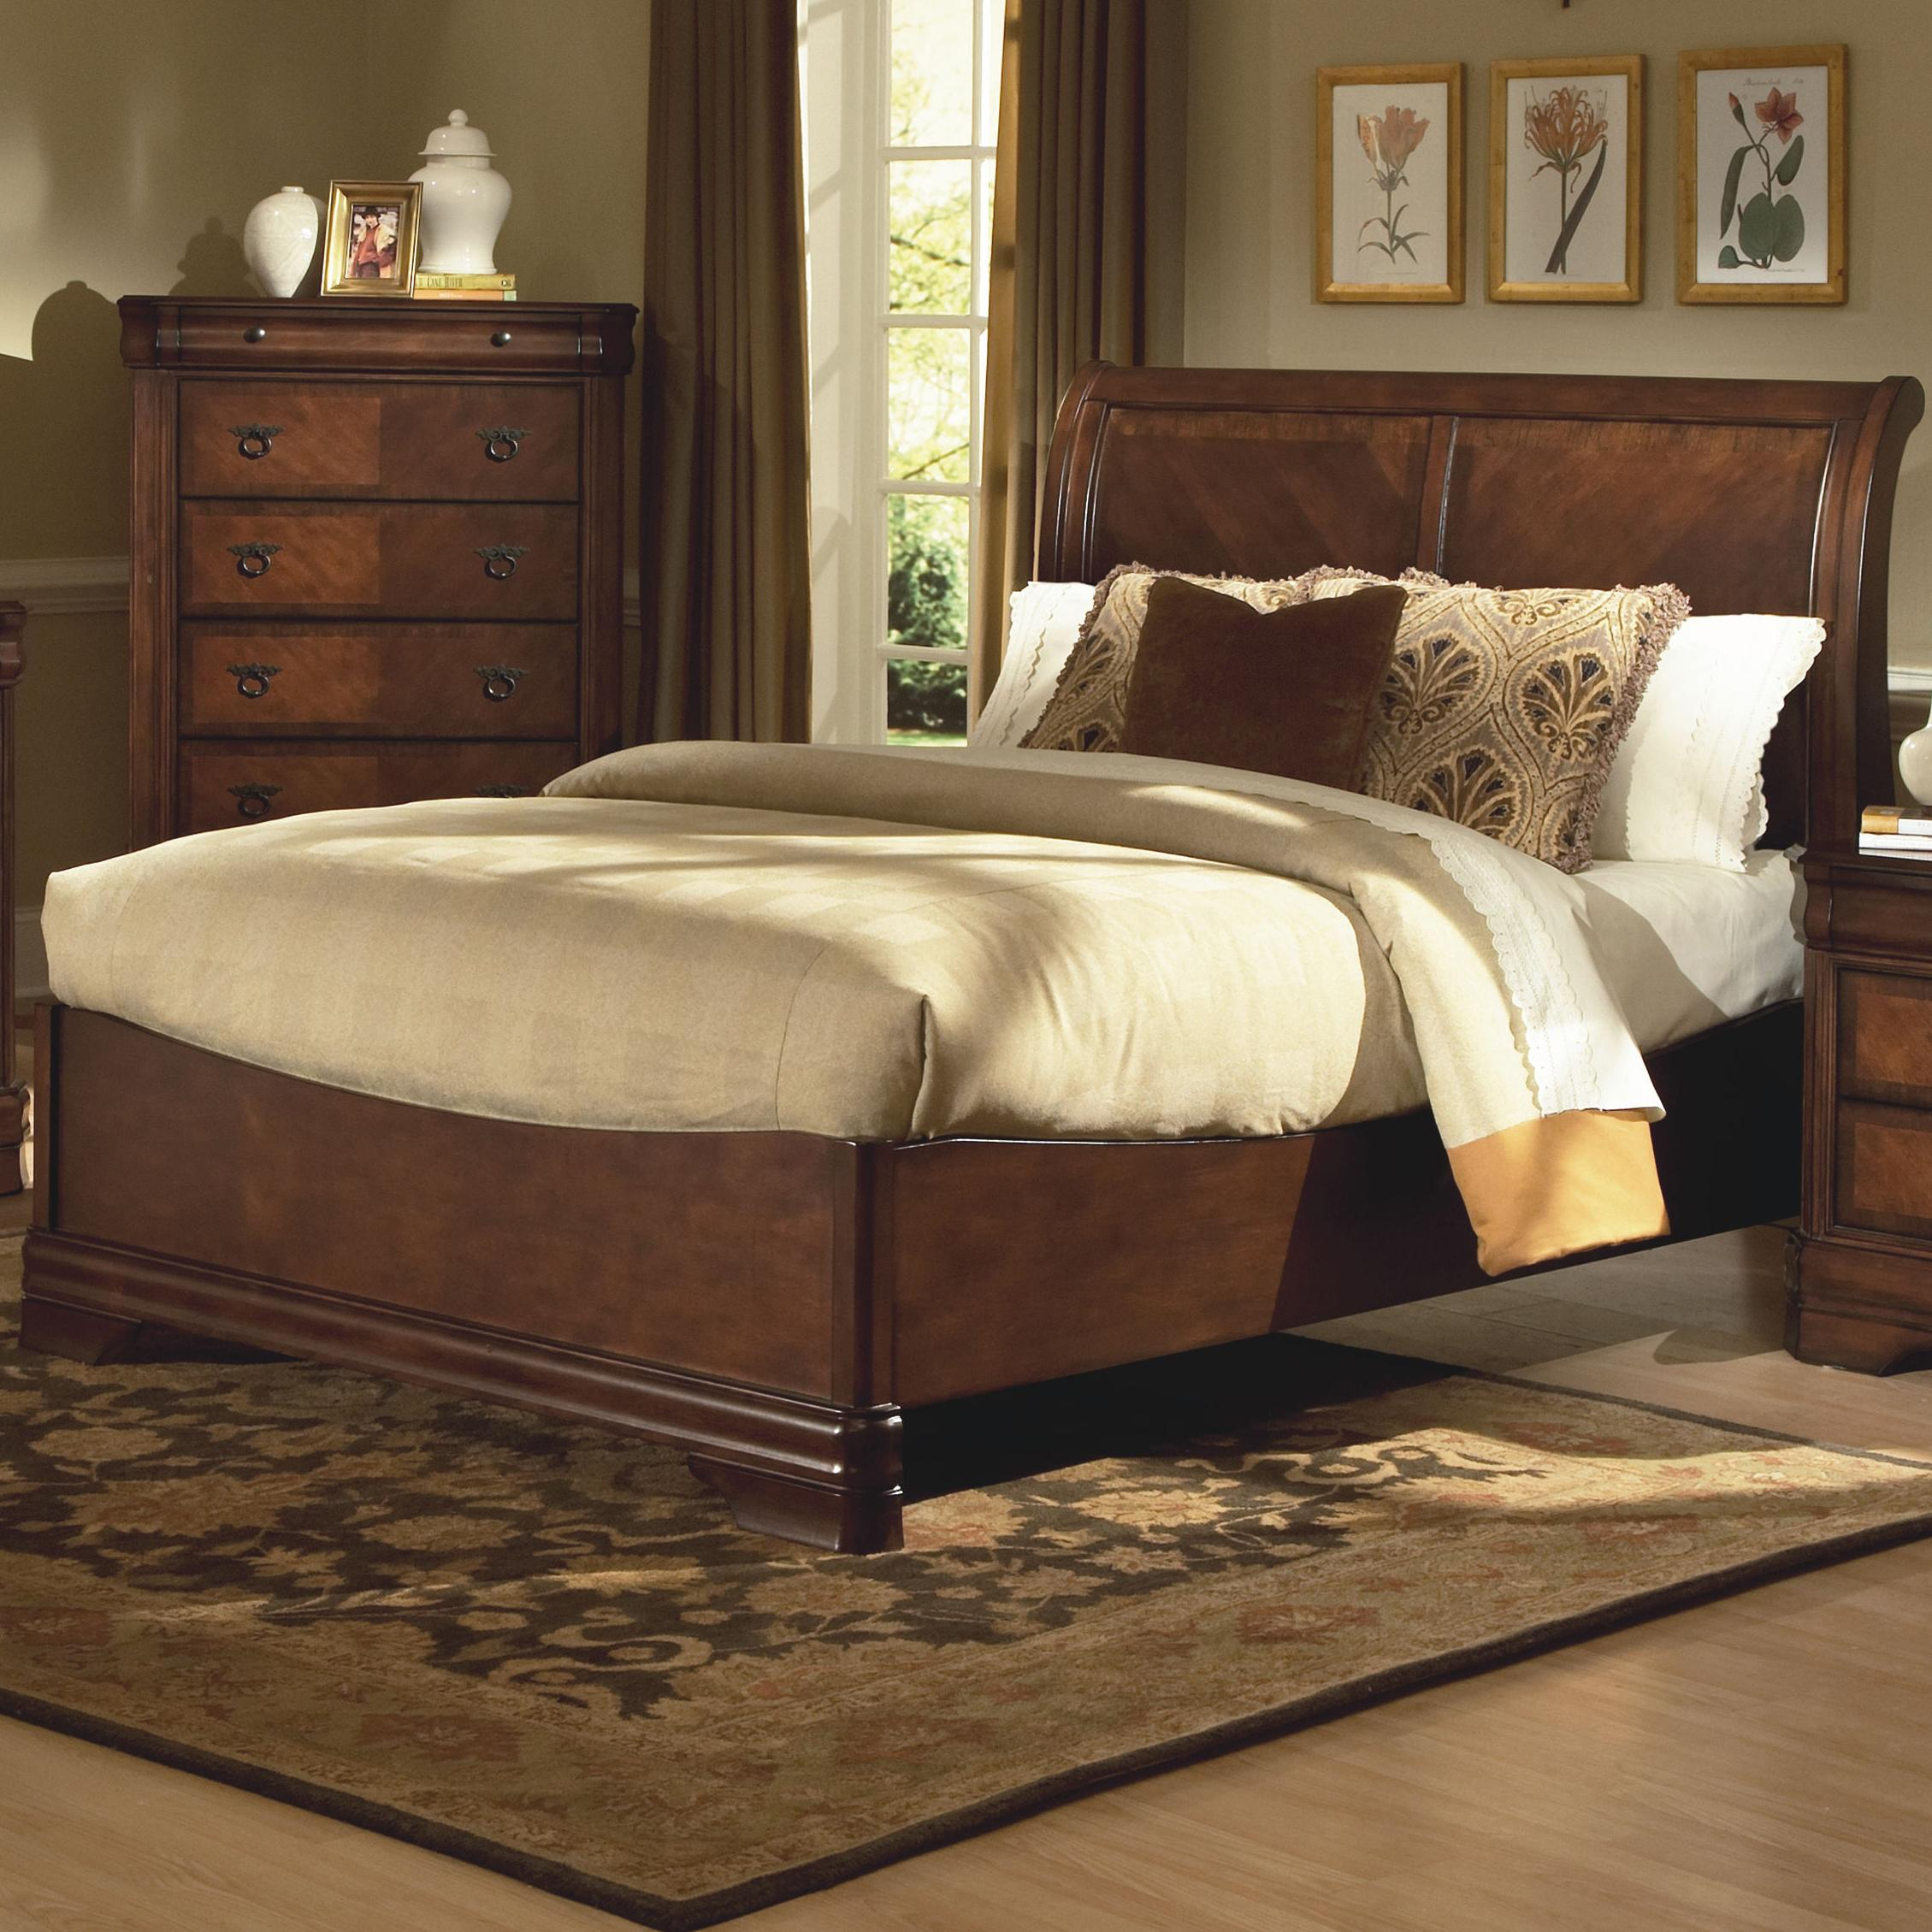 New Classic Sheridan Queen Bed W Sleigh Headboard Great American Home Store Headboard